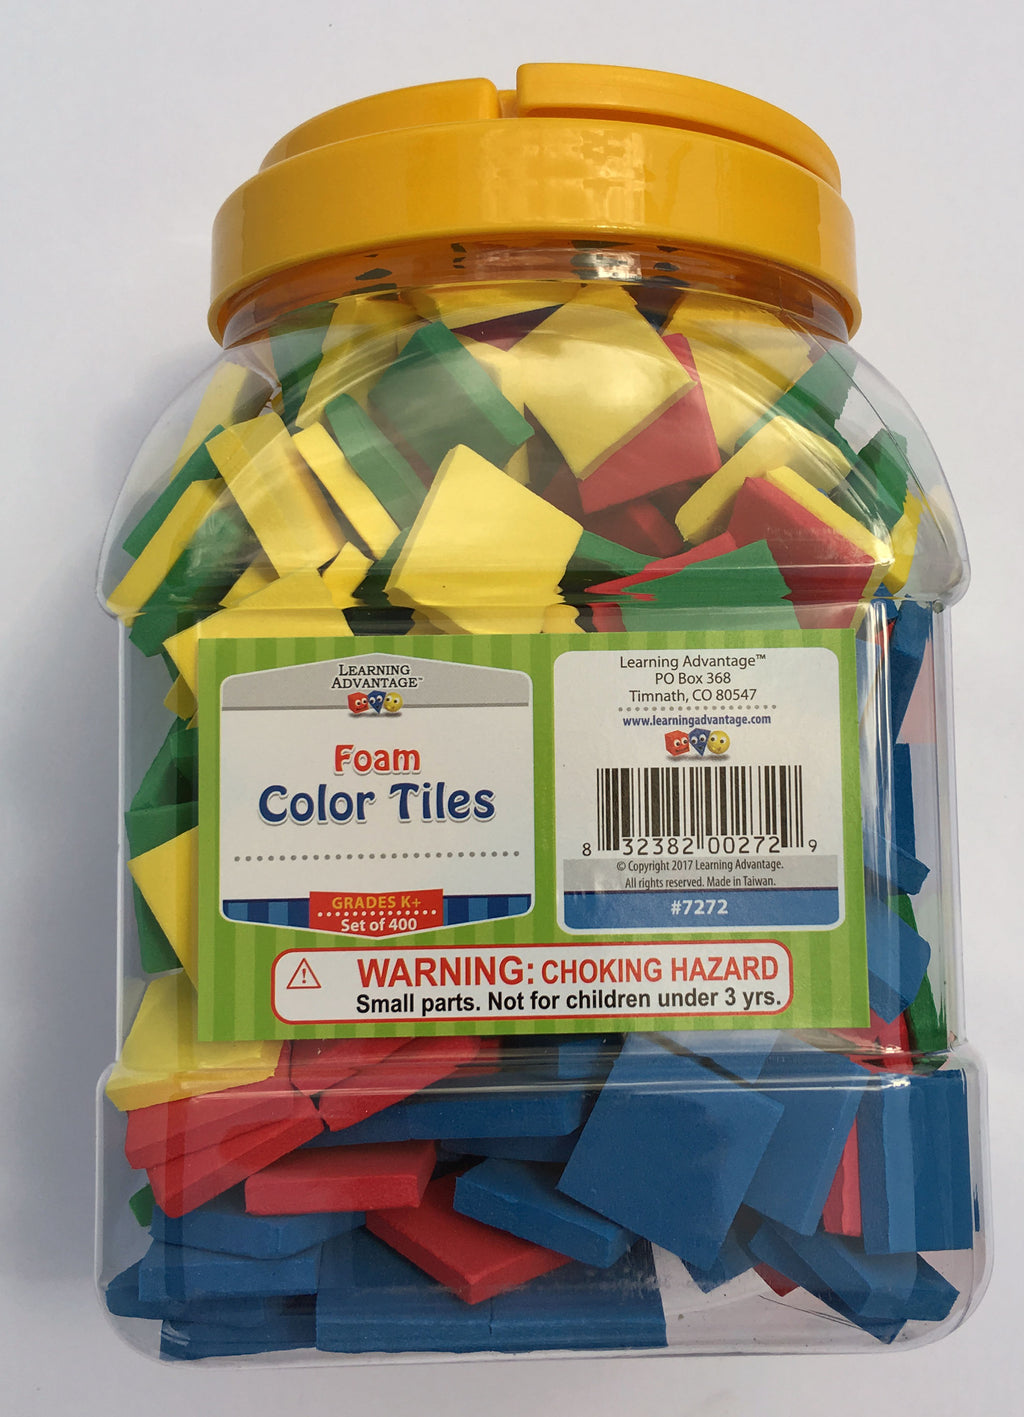 Color Tiles (Foam) - McRuffy Press